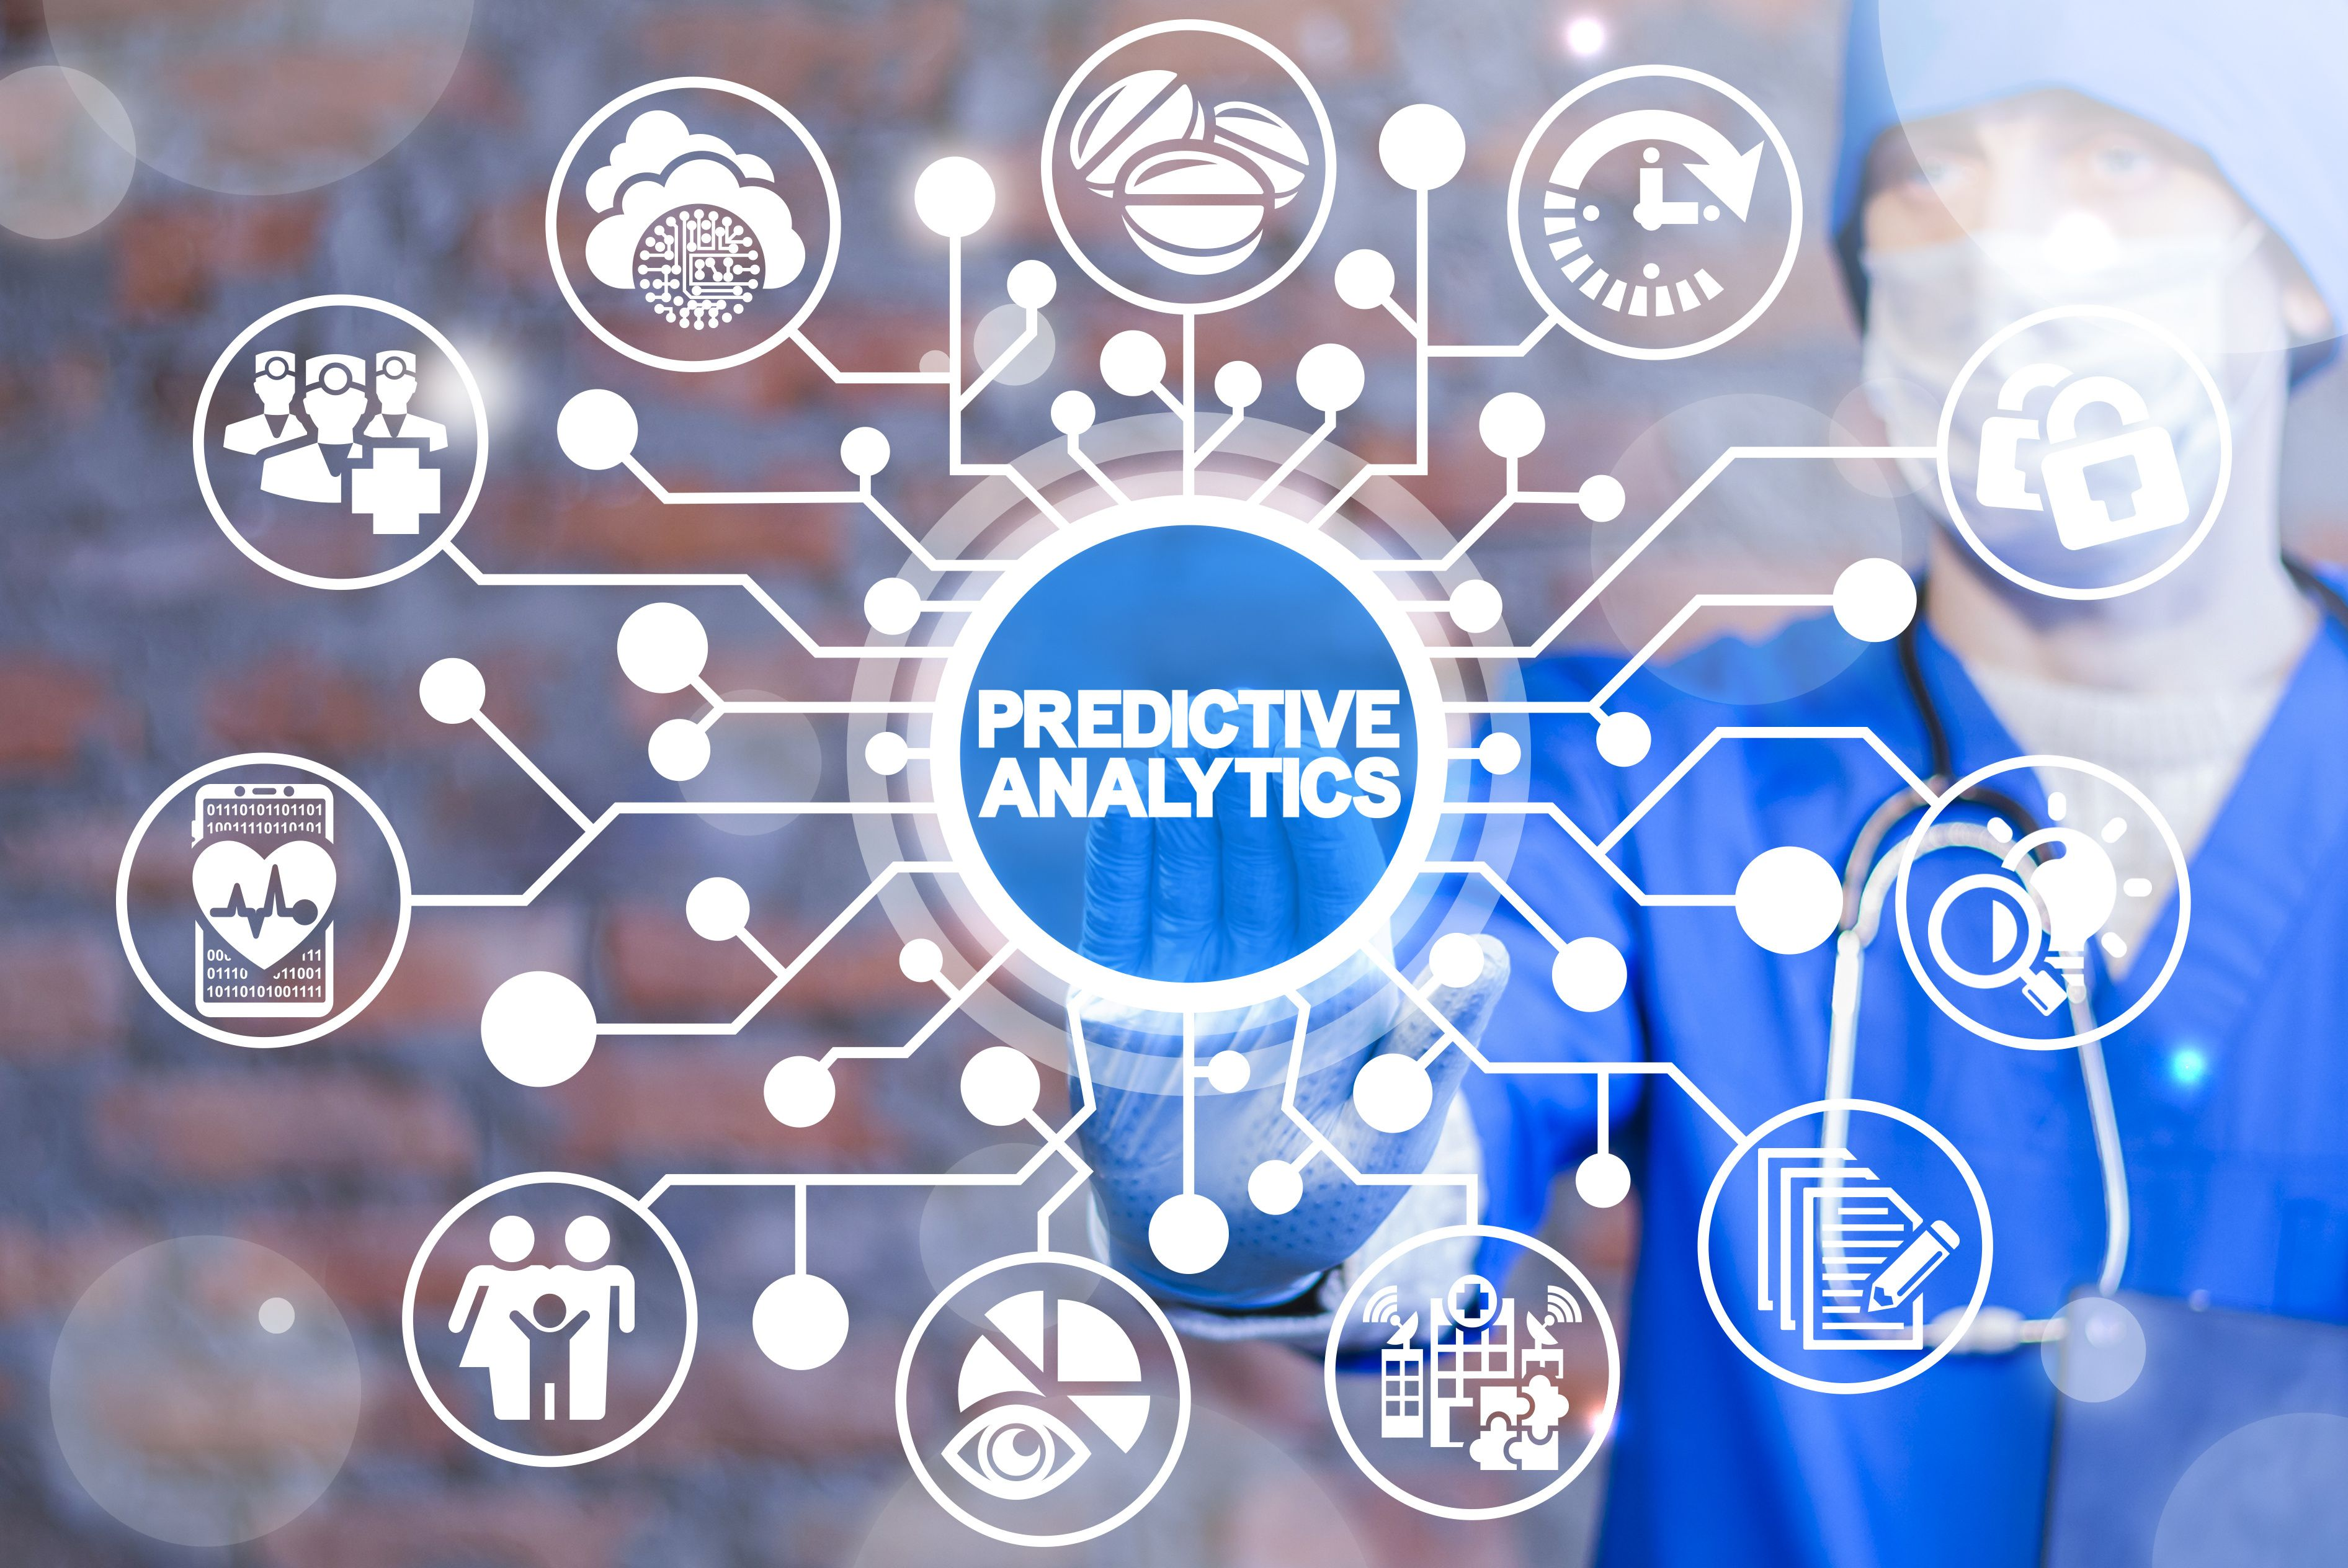 Empowering Healthcare With Predictive Analytics